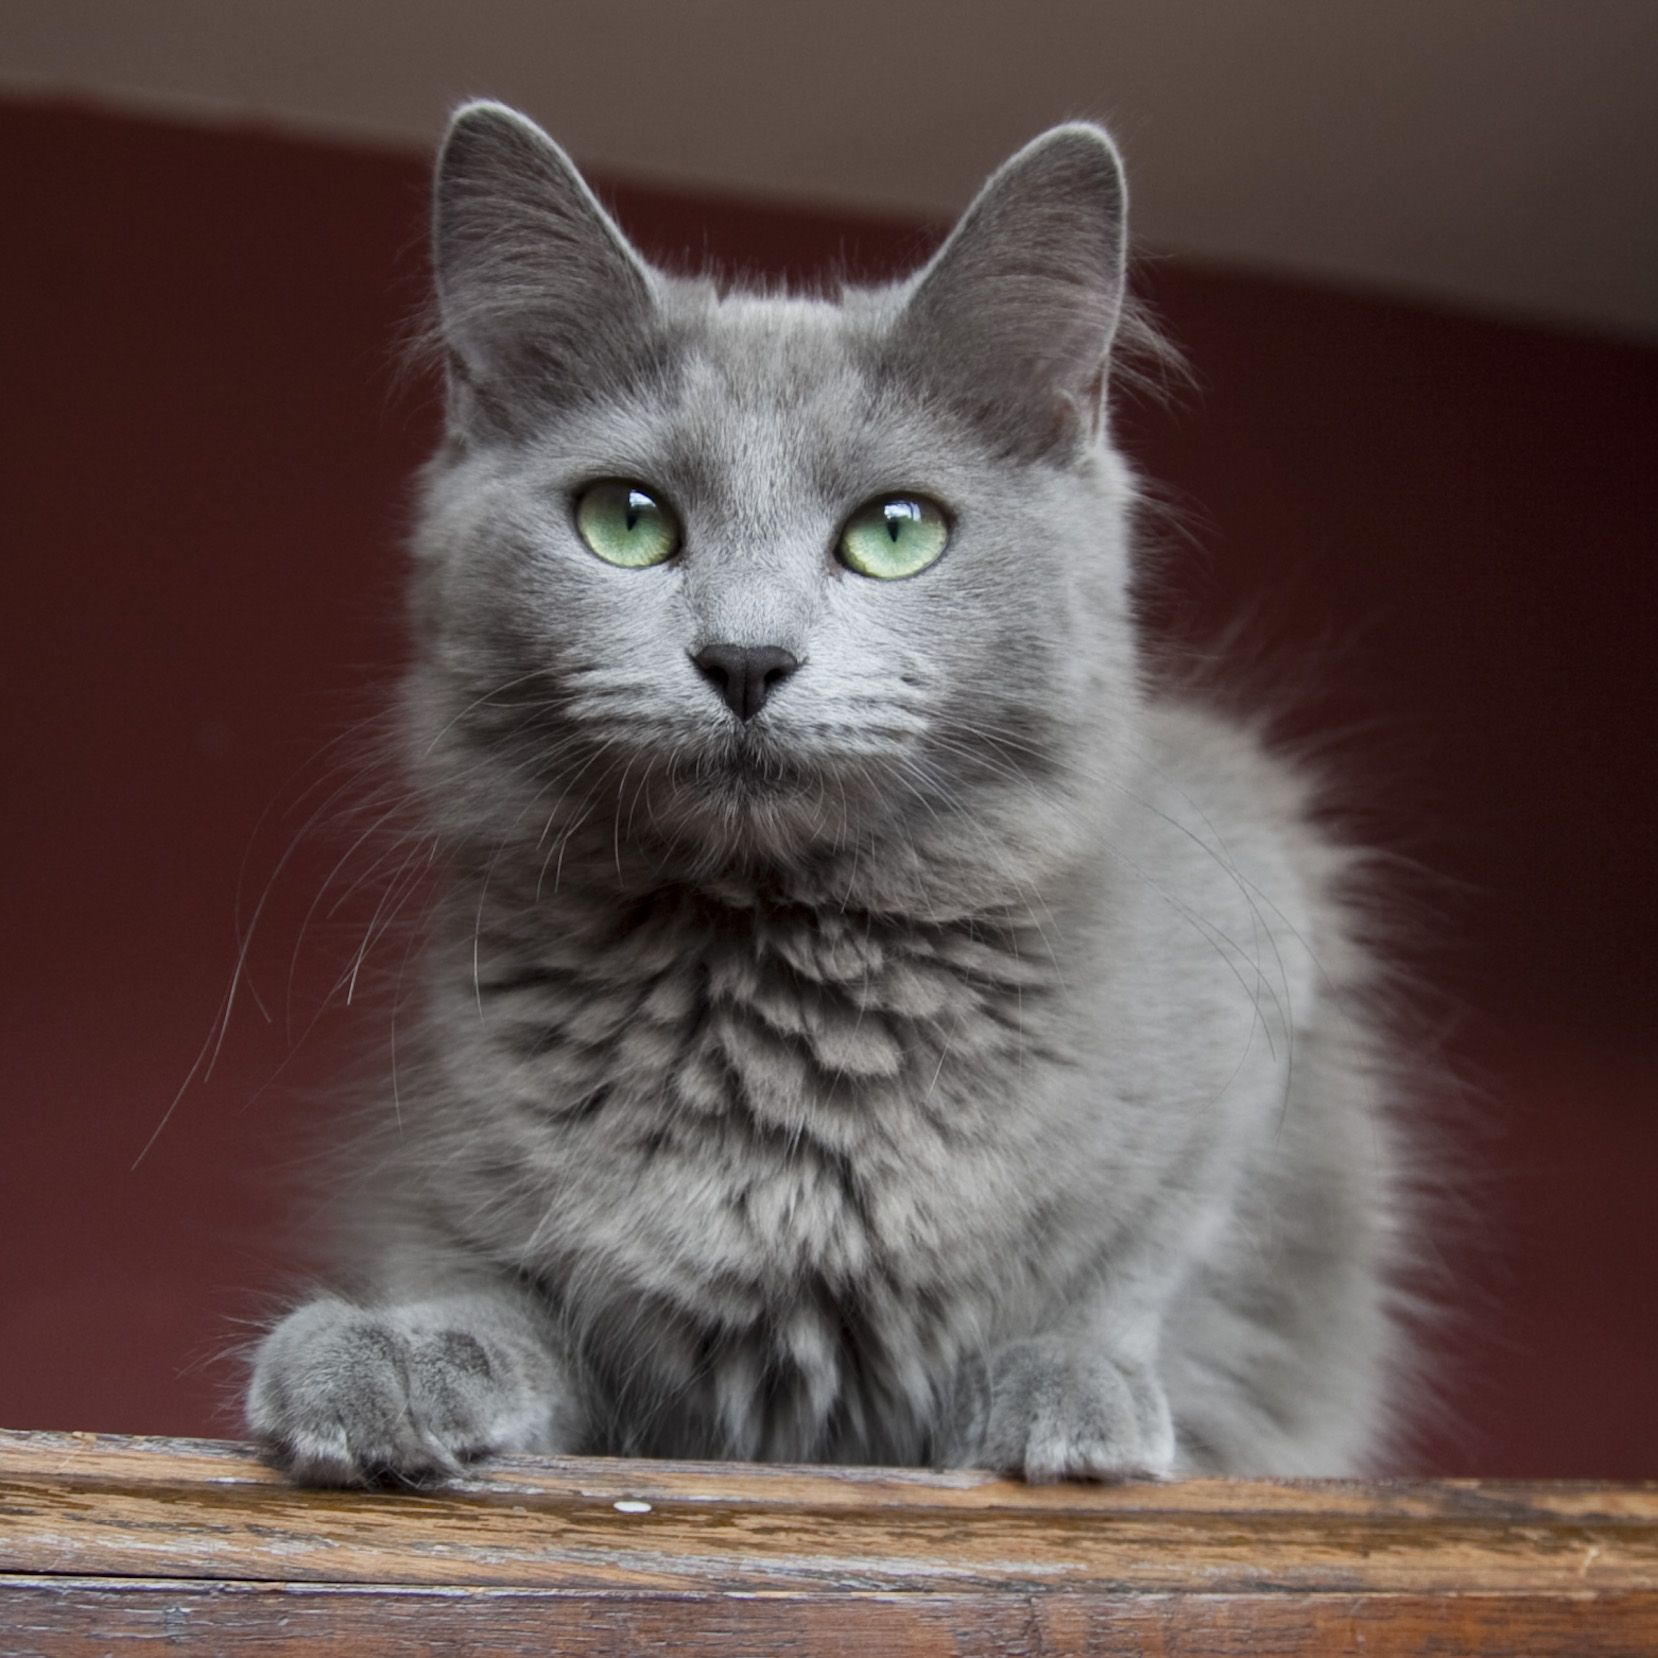 Nebelung kitty. My family actually owns one, but they're a